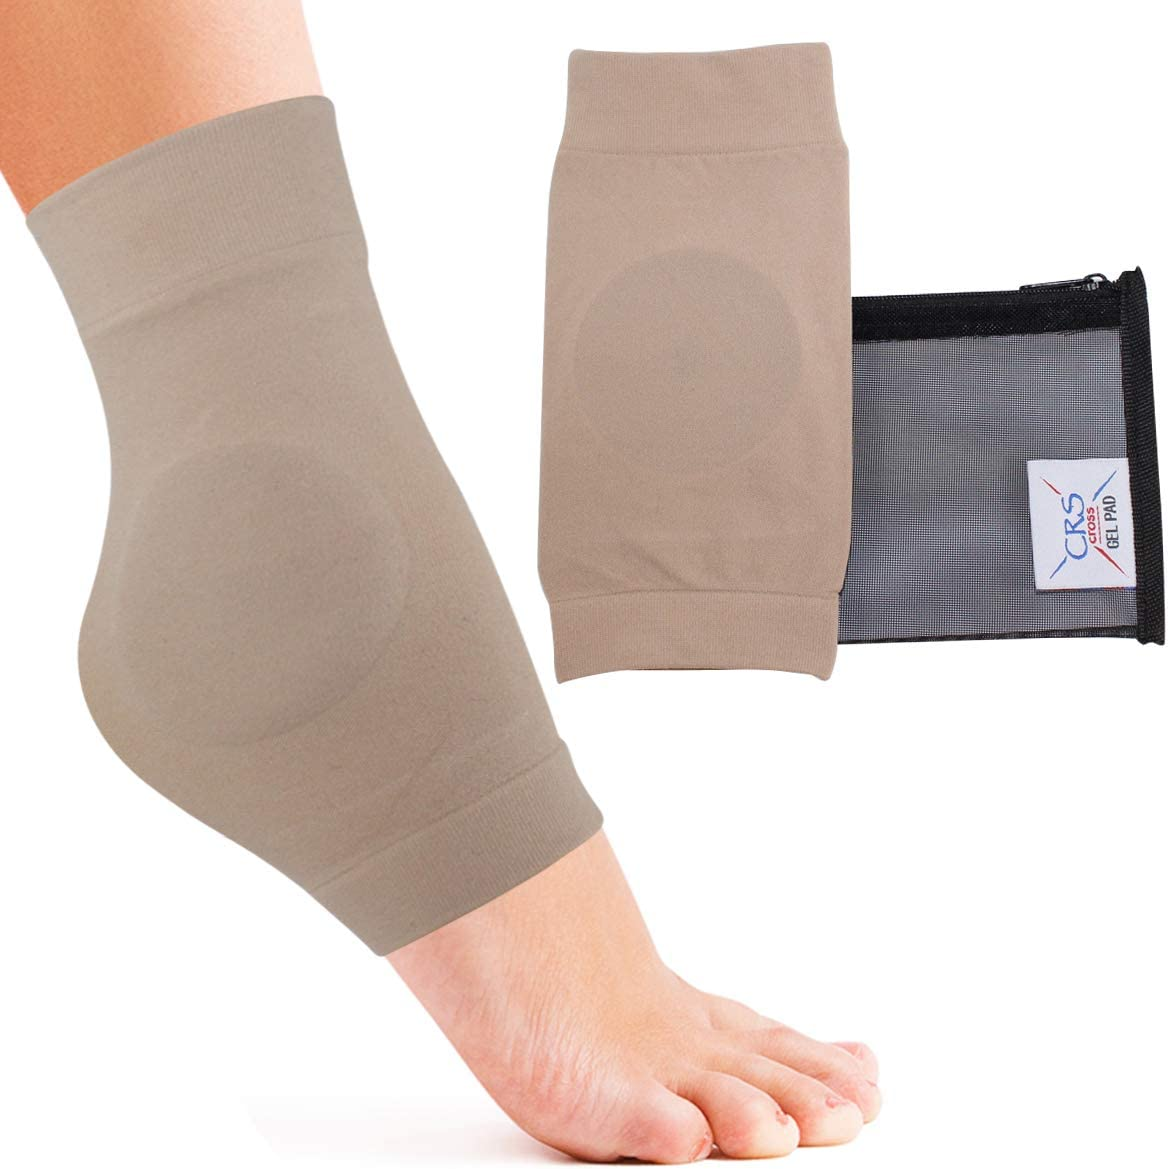 CRS Cross Ankle Malleolar Gel Sleeves - Premium Padded Skate Sock with Ankle Bone Pads for Figure Skating, Hockey, Inline, Roller, Ski, Hiking Boots. Ankle Protector & Cushion